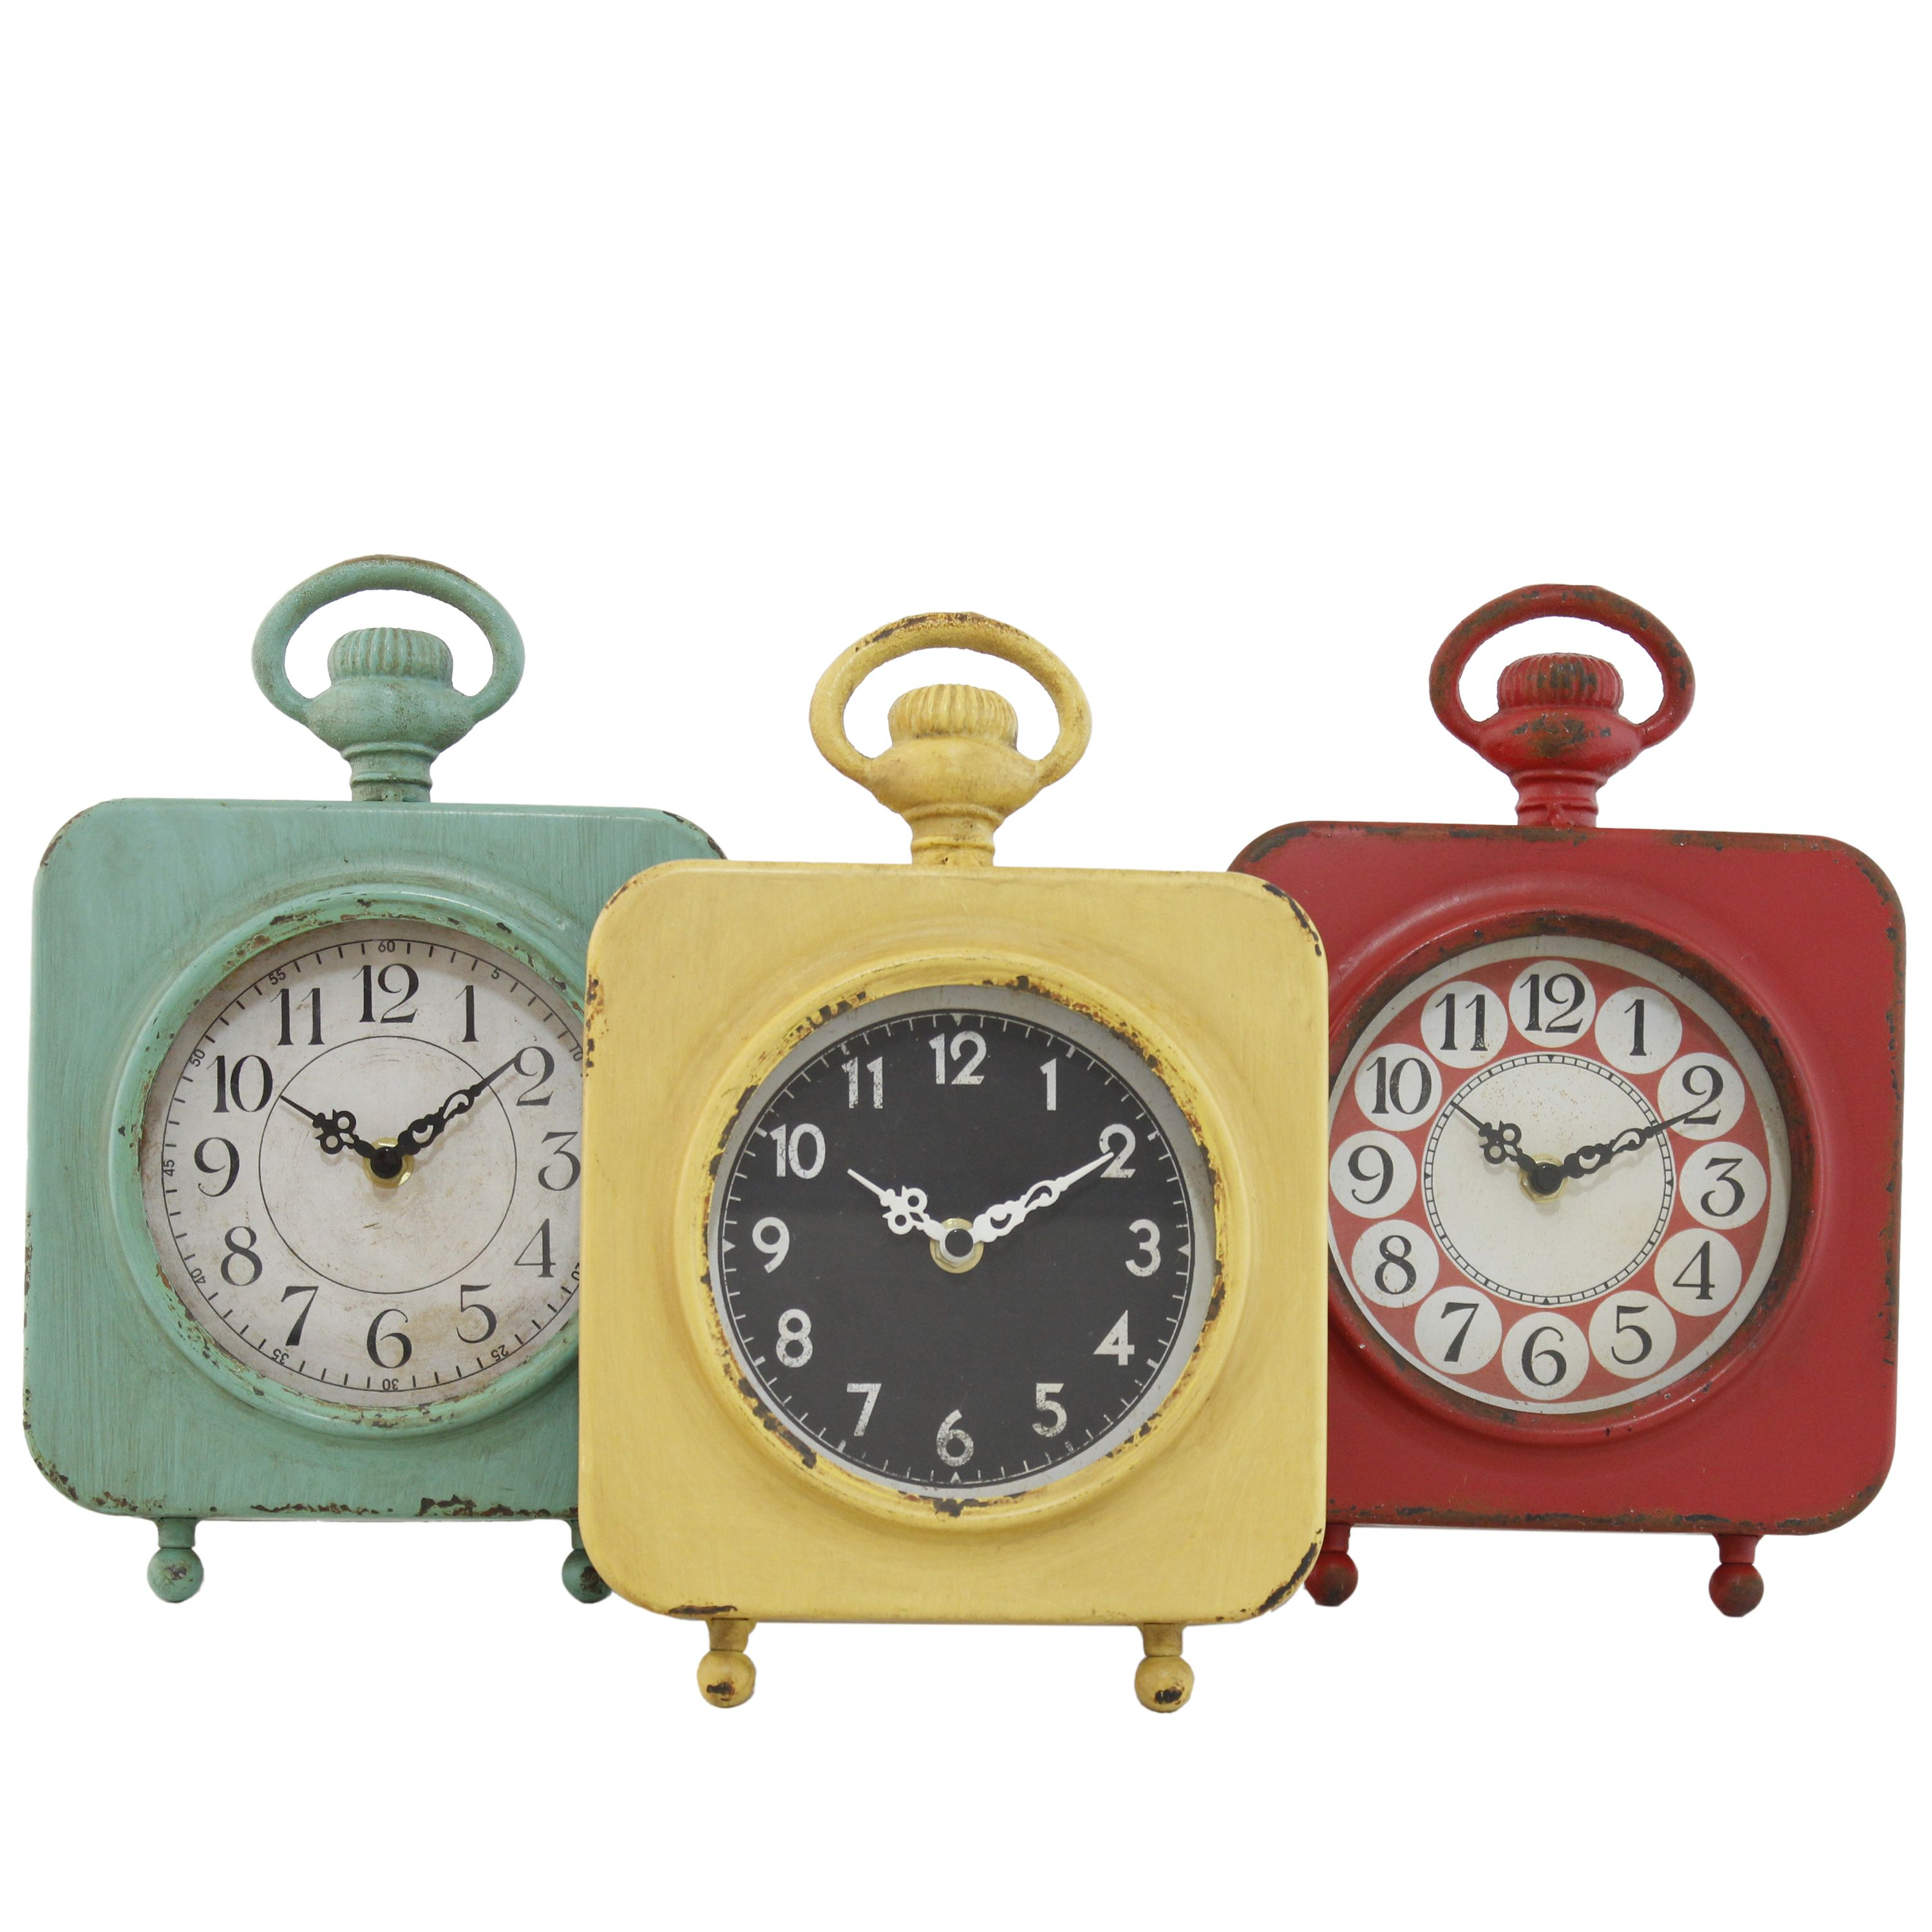 Chloe Clock Set ImportCollection.com | What Time Is It? | Pinterest ...